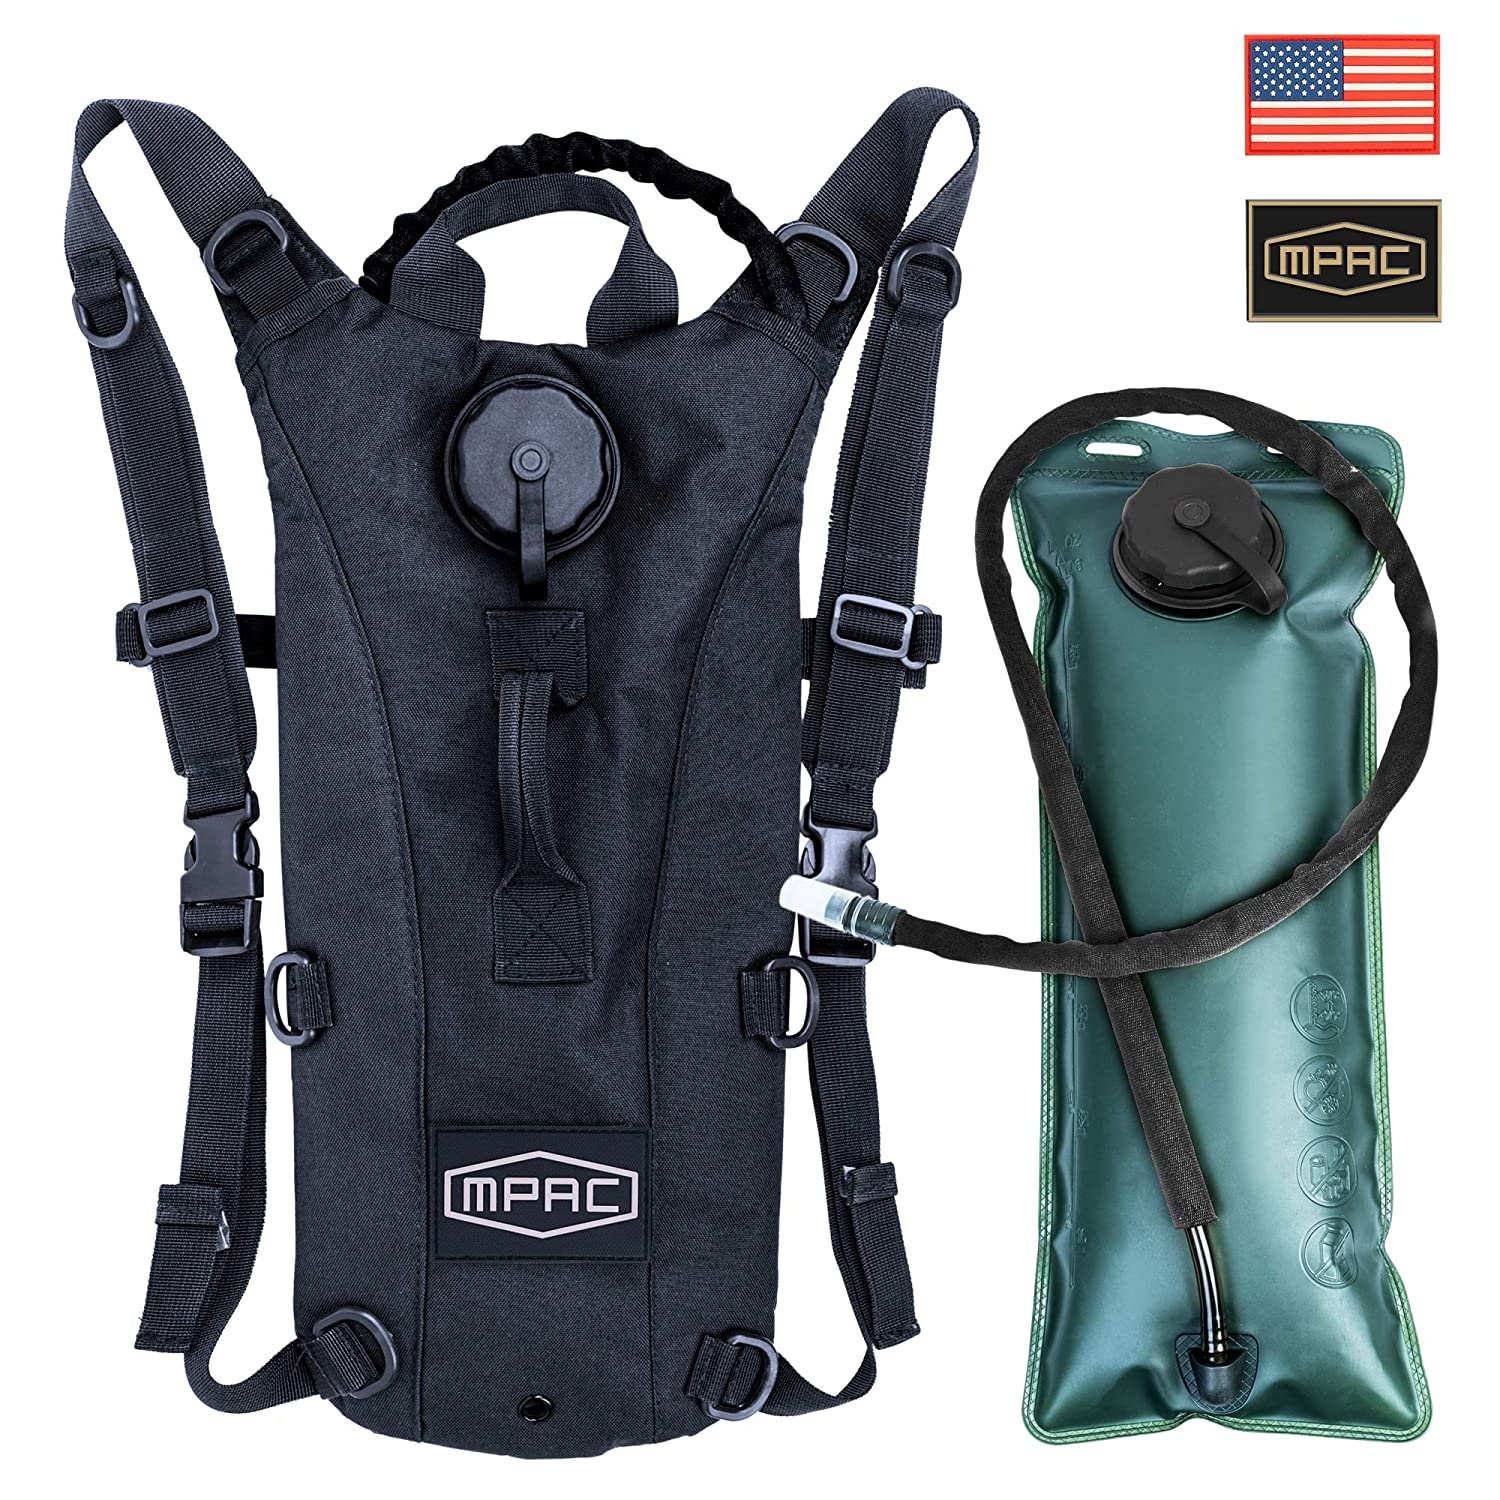 mPac Hydration Backpack Water Bag Pack with FDA Approved 3L BPA Free Bladder for Running Hiking Cycling Camping, Two Patches Included